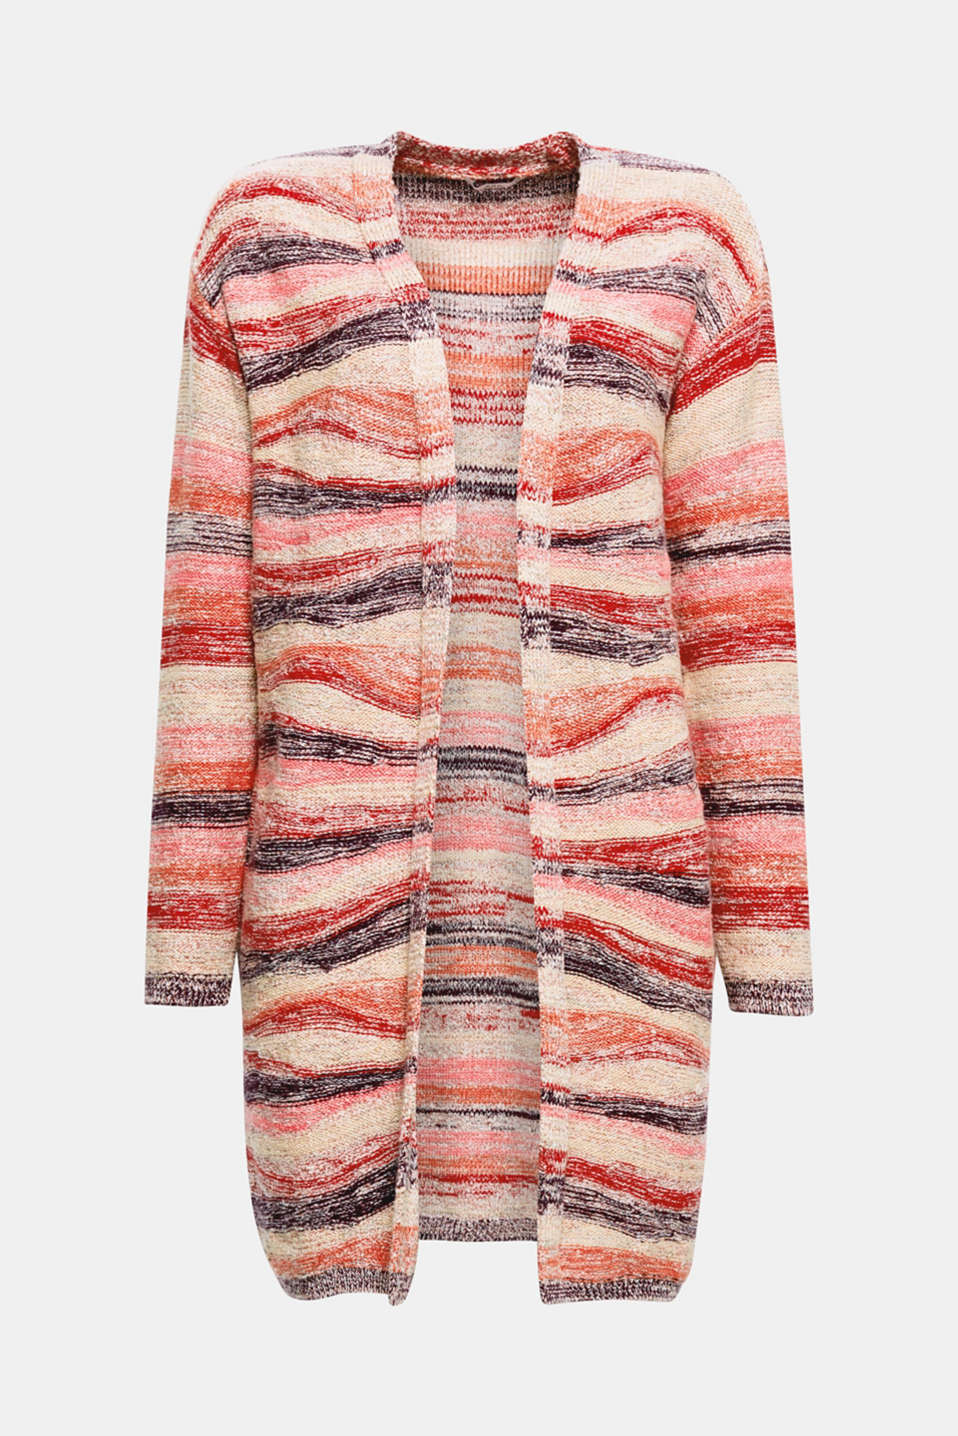 This casual, open-fronted cardigan features a multi-coloured stripe pattern for a wonderfully eye-catching effect.